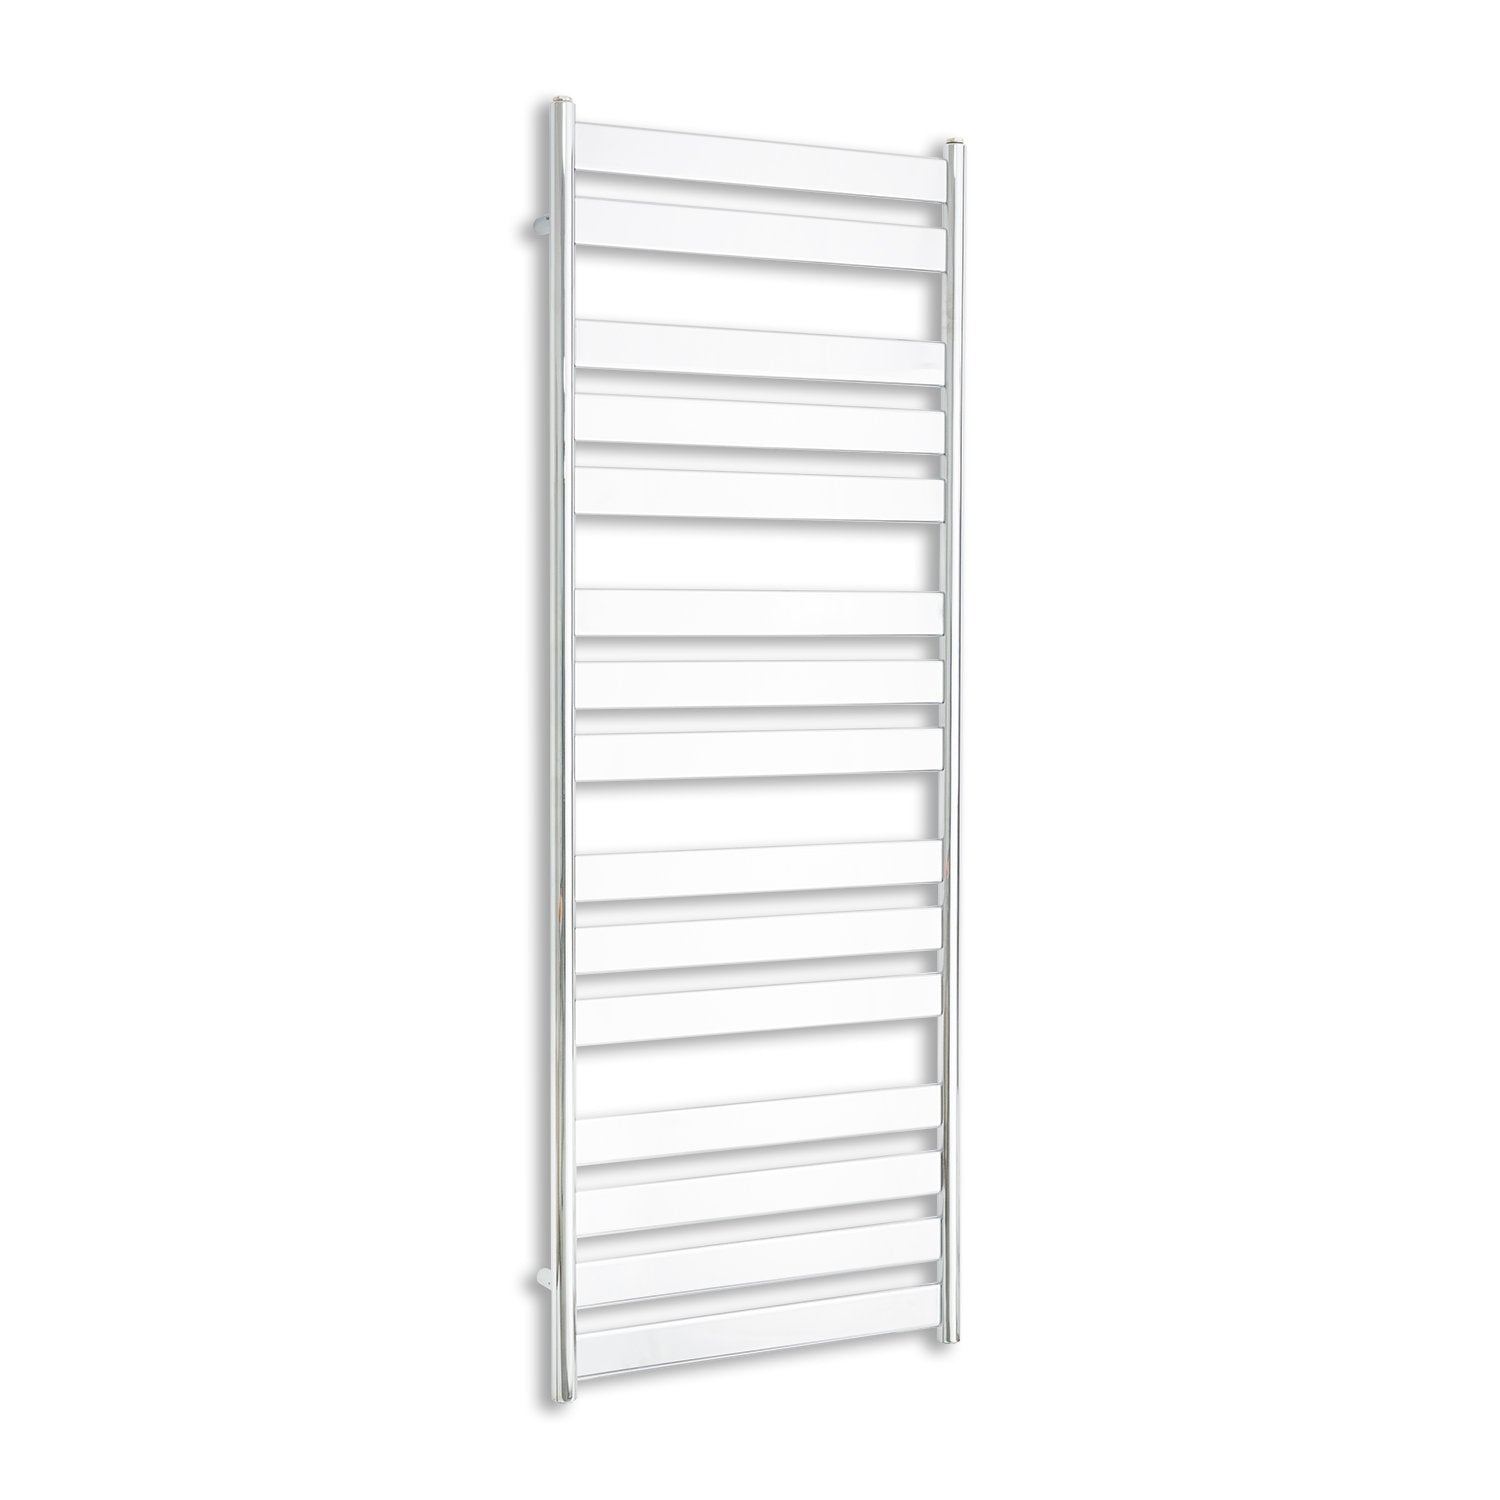 600mm Wide 1600mm High Heated Flat Panel Design Towel Rail Radiator Chrome for Central Heating,Towel Rail Only